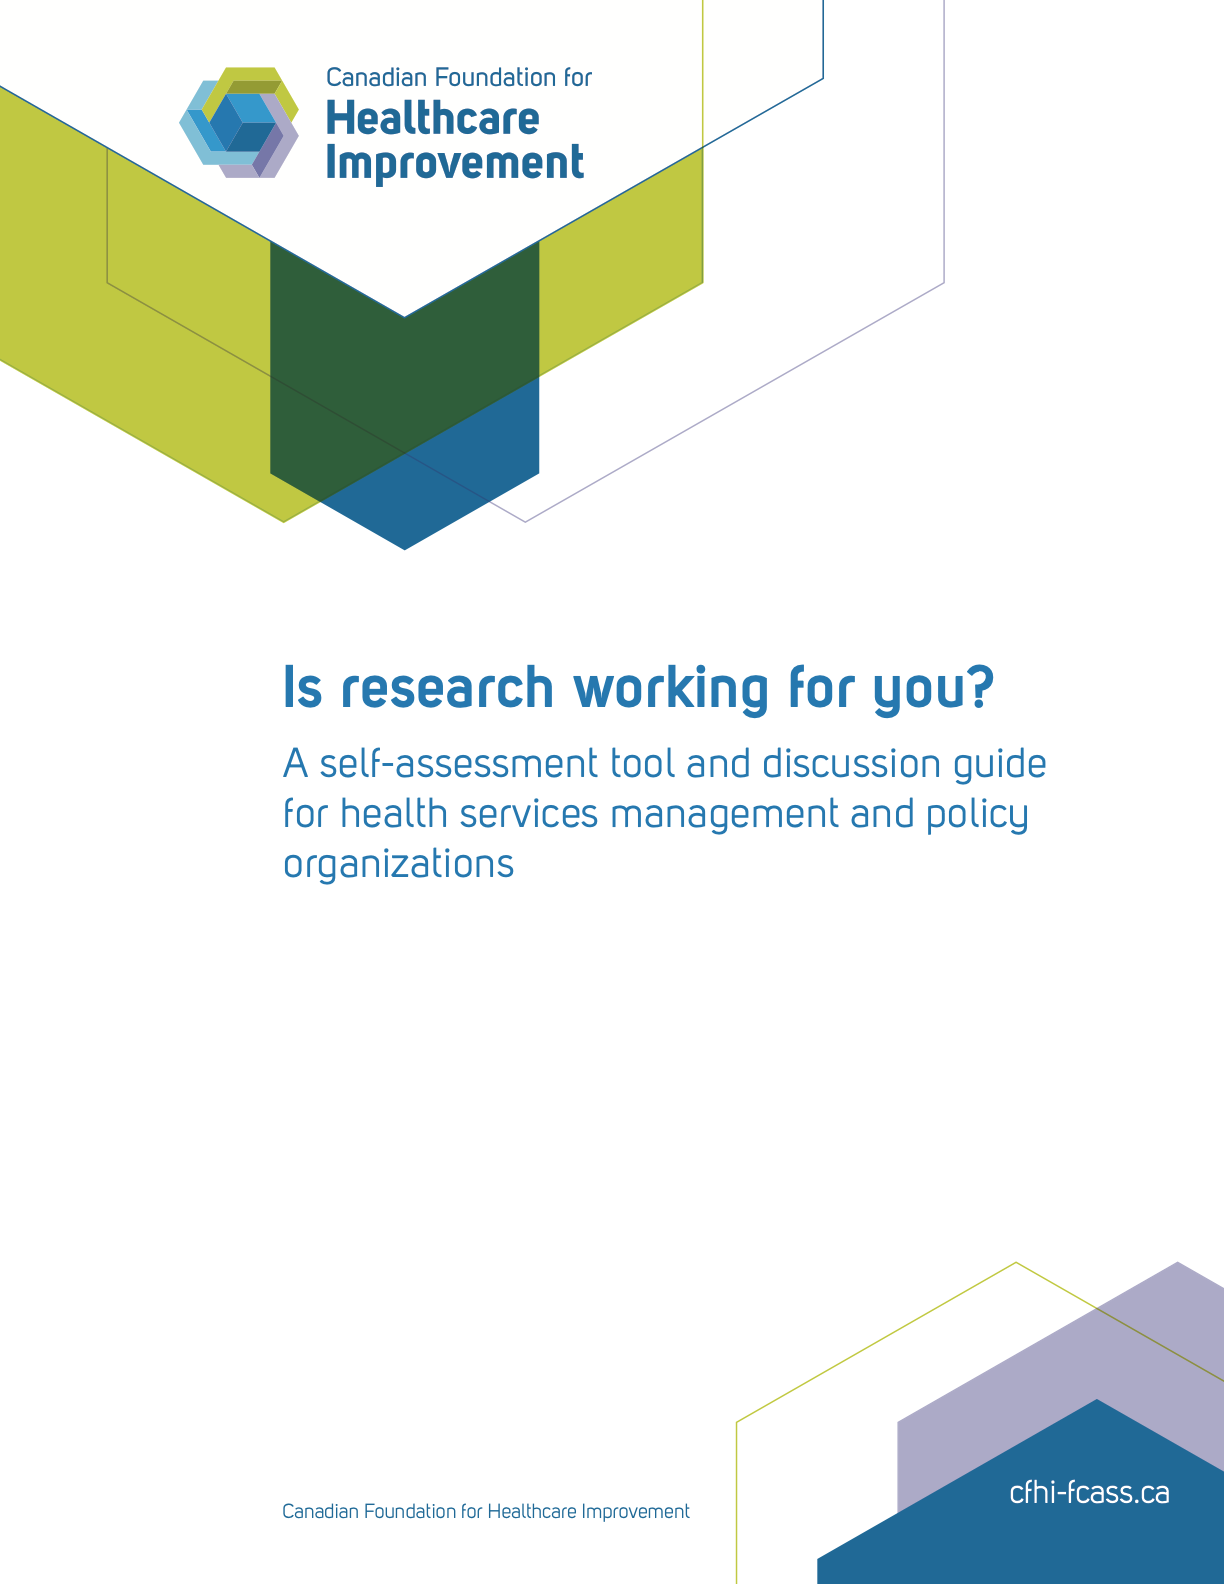 Tool: Is Research Working for You?